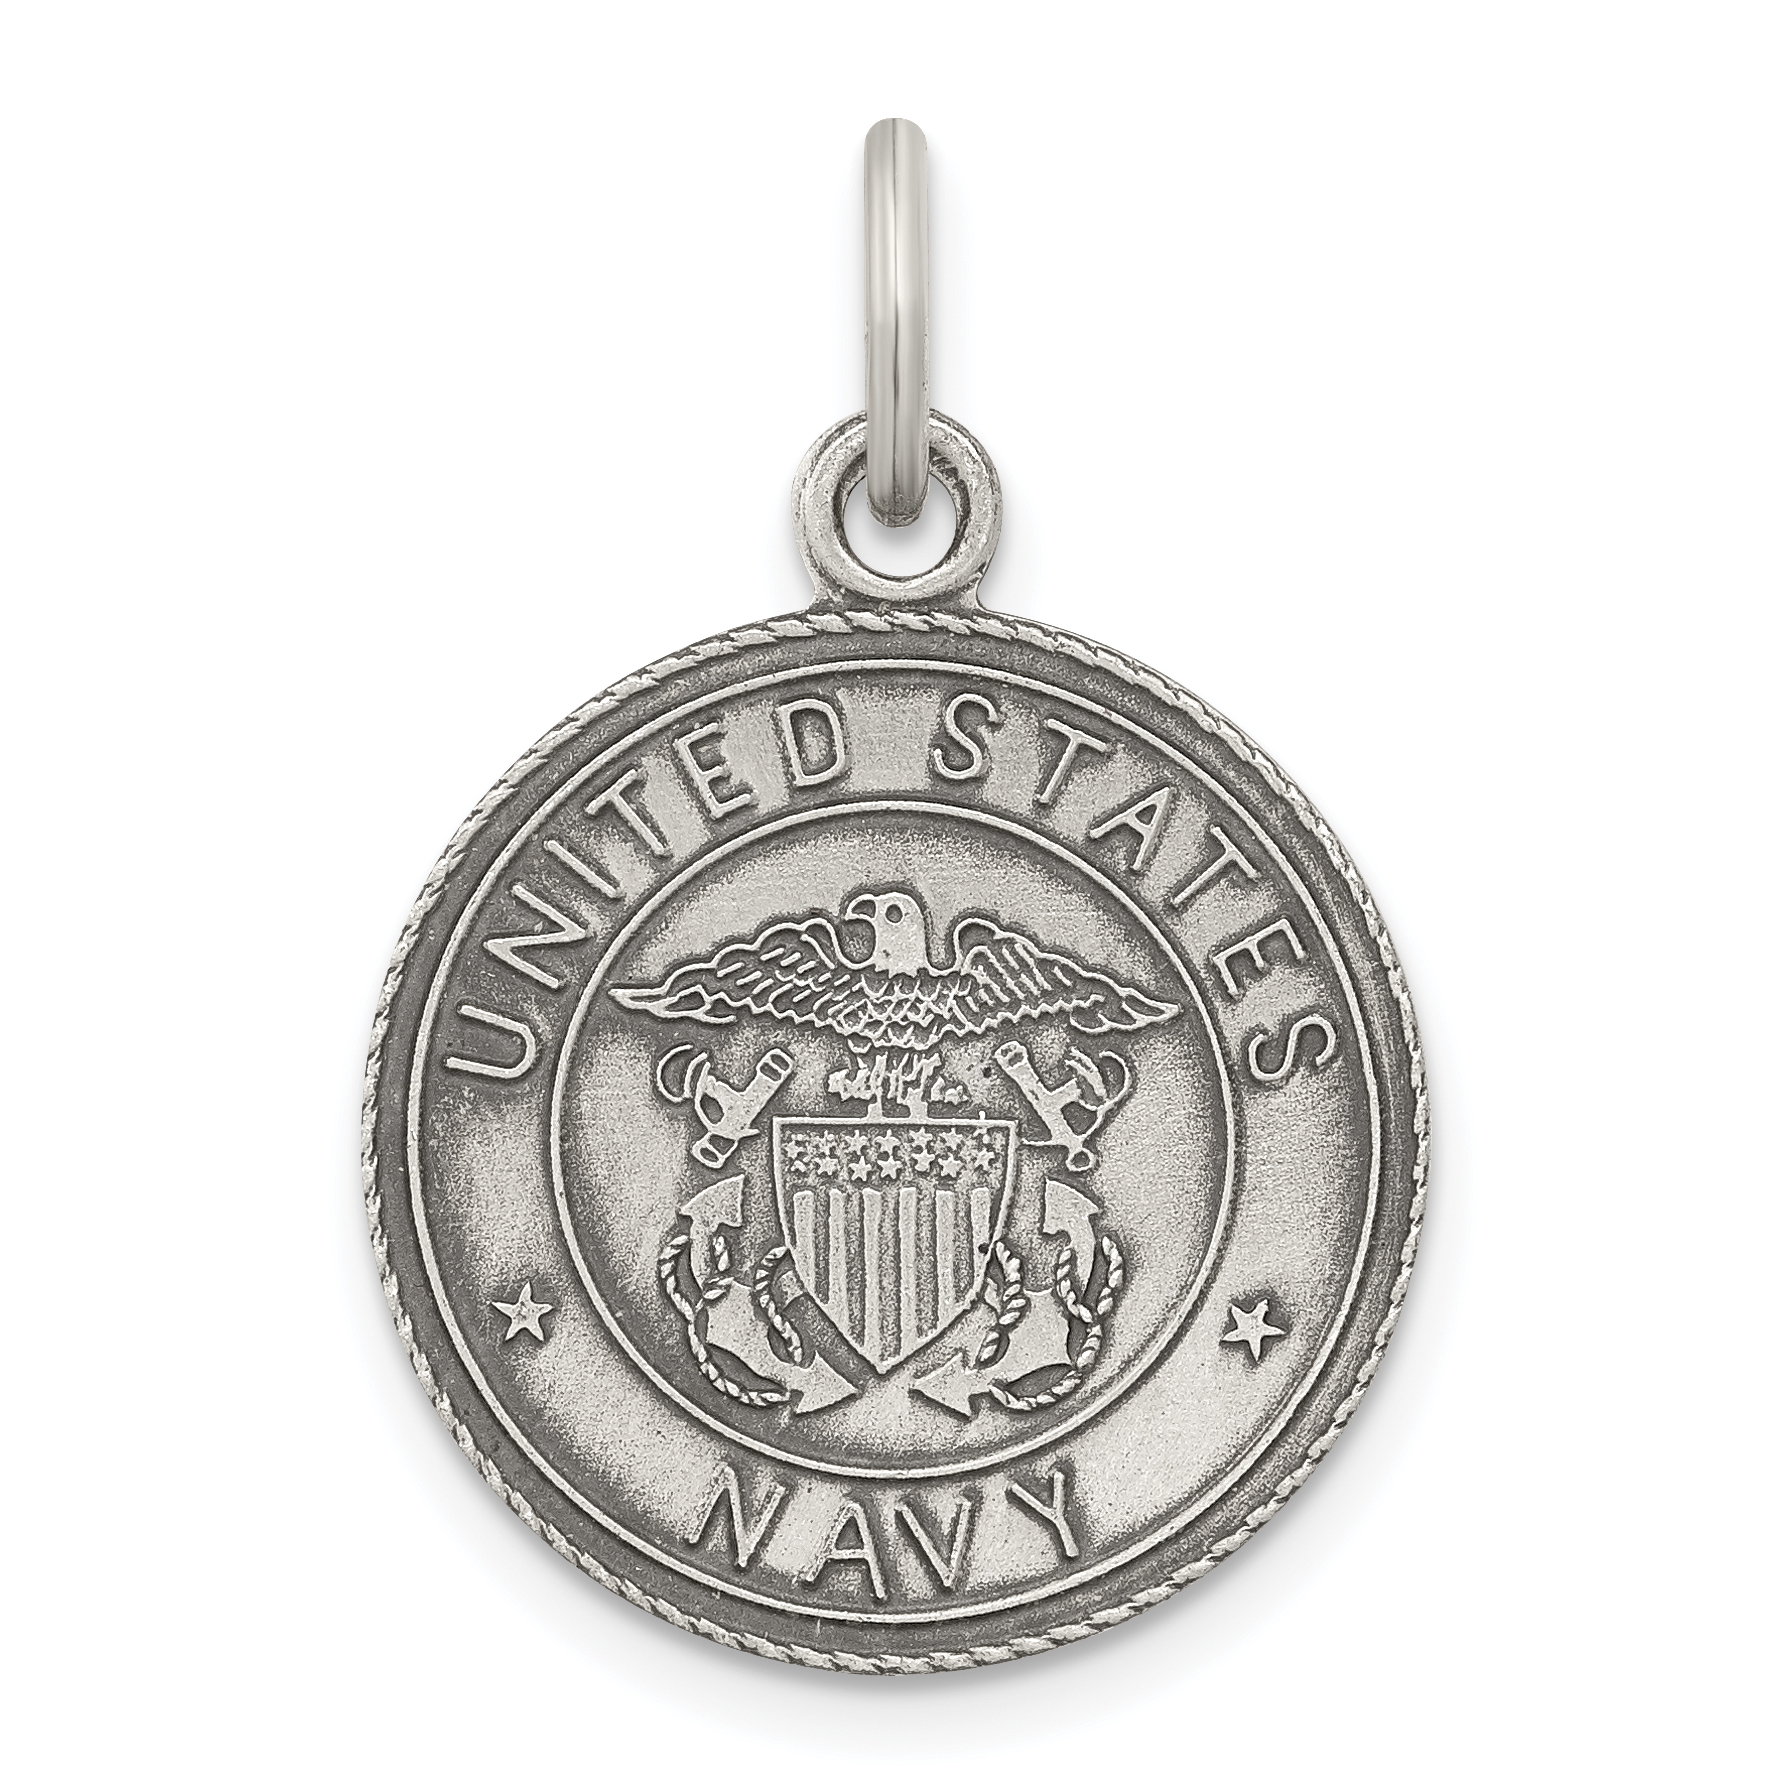 925 Sterling Silver Us Navy Medal Pendant Charm Necklace Military Religious Patron Saint St Christopher Fine Jewelry Gifts For Women For Her - image 2 de 2